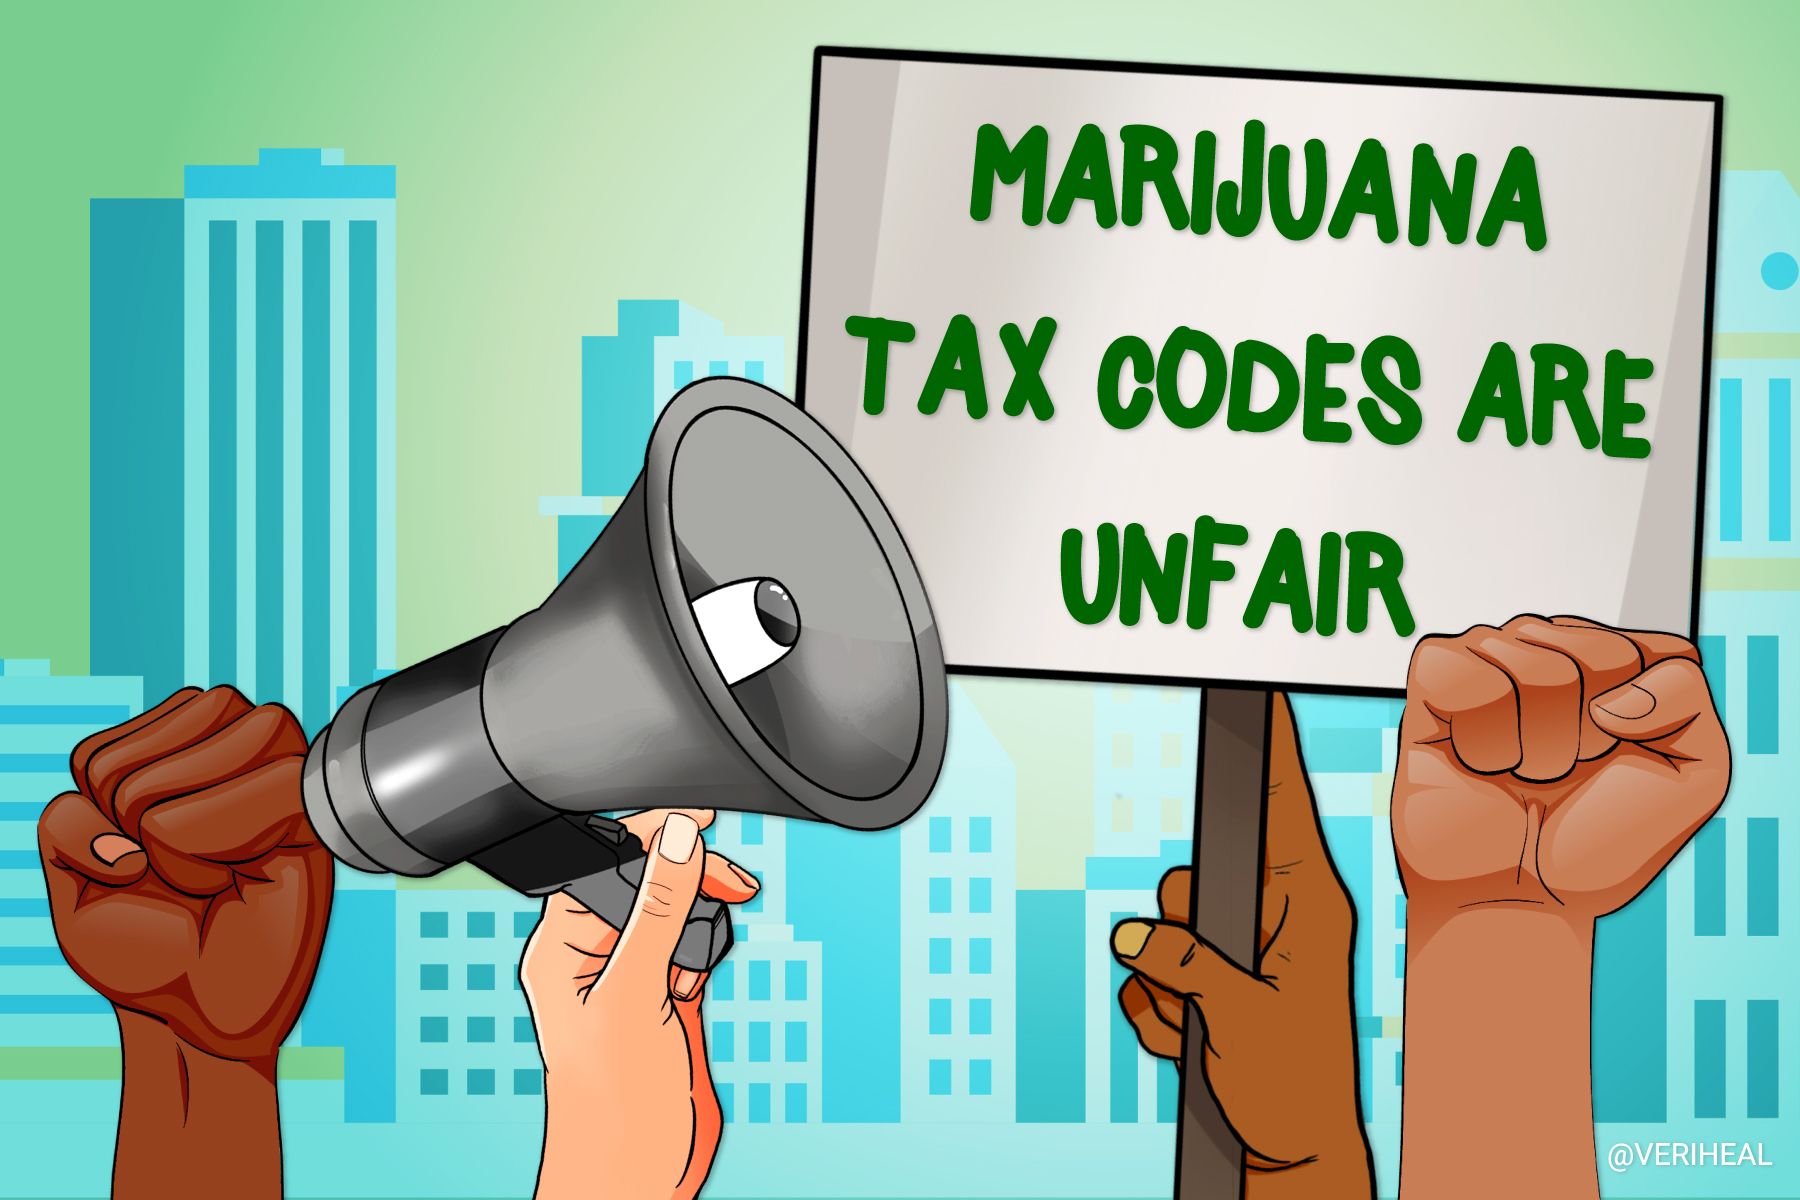 U.S. Supreme Court Refuses to Resolve IRS Cannabis Lawsuits for a Second Time